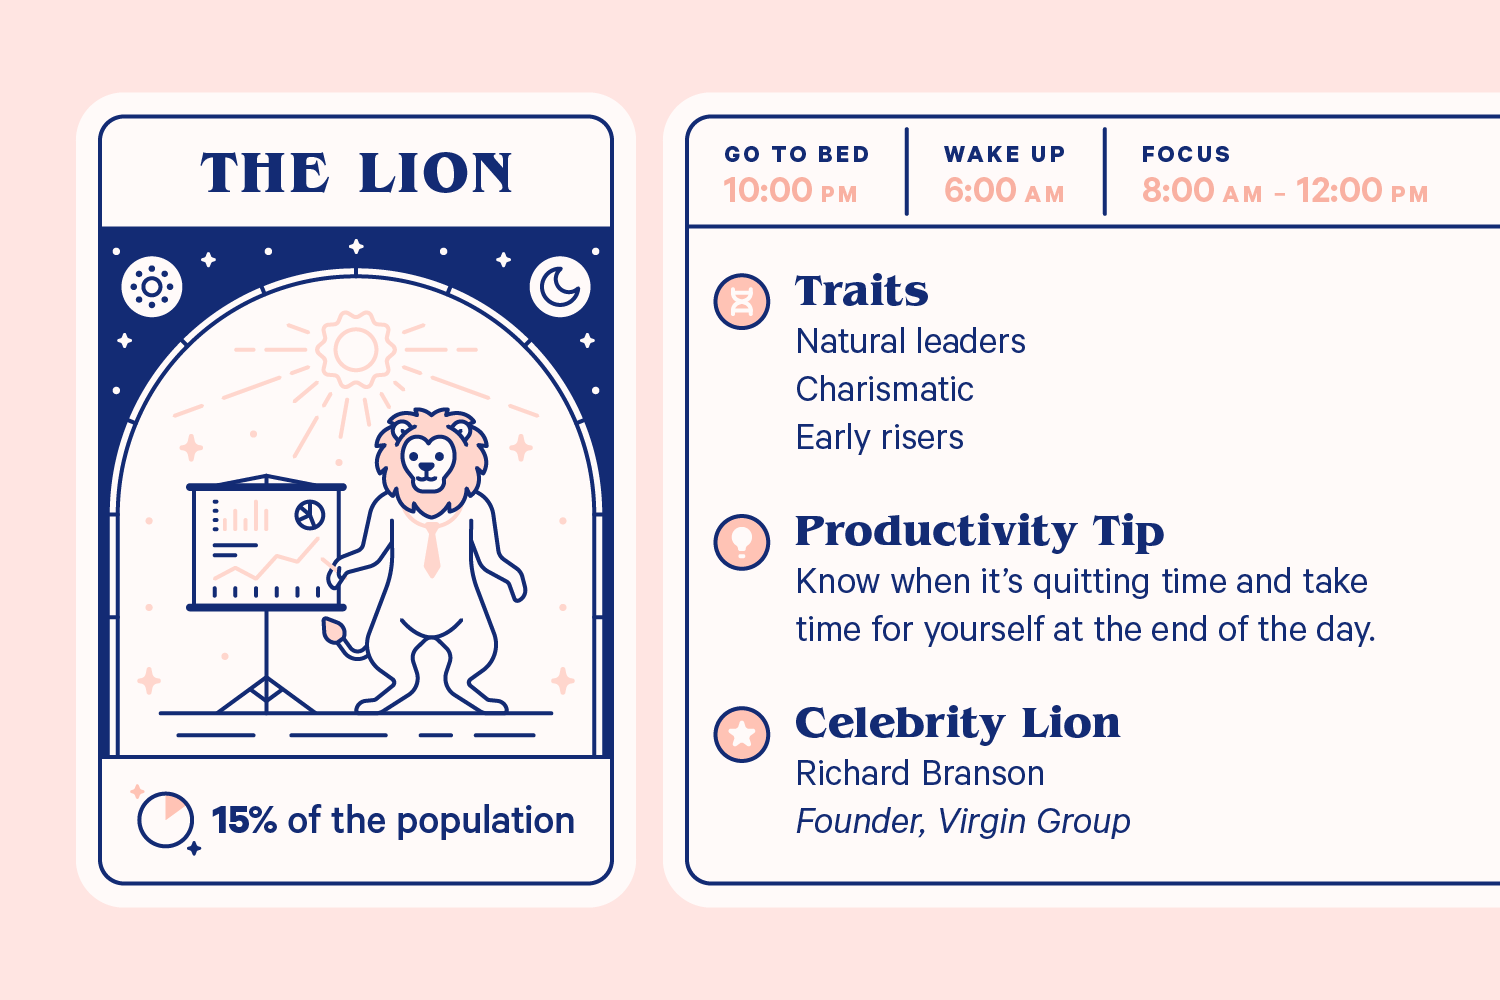 Infographic displaying information about The Lion. Goes to bed at 10:00 pm, wakes at 6:00 am, focus time from 8:00 am to 12:00 pm. Traits: Natural leaders, charismatic, early risers. Productivity tip: Know when it's quitting time and take time for yourself at the end of the day. Celebrity Lion: Richard Branson, Founder of Virgin Group.